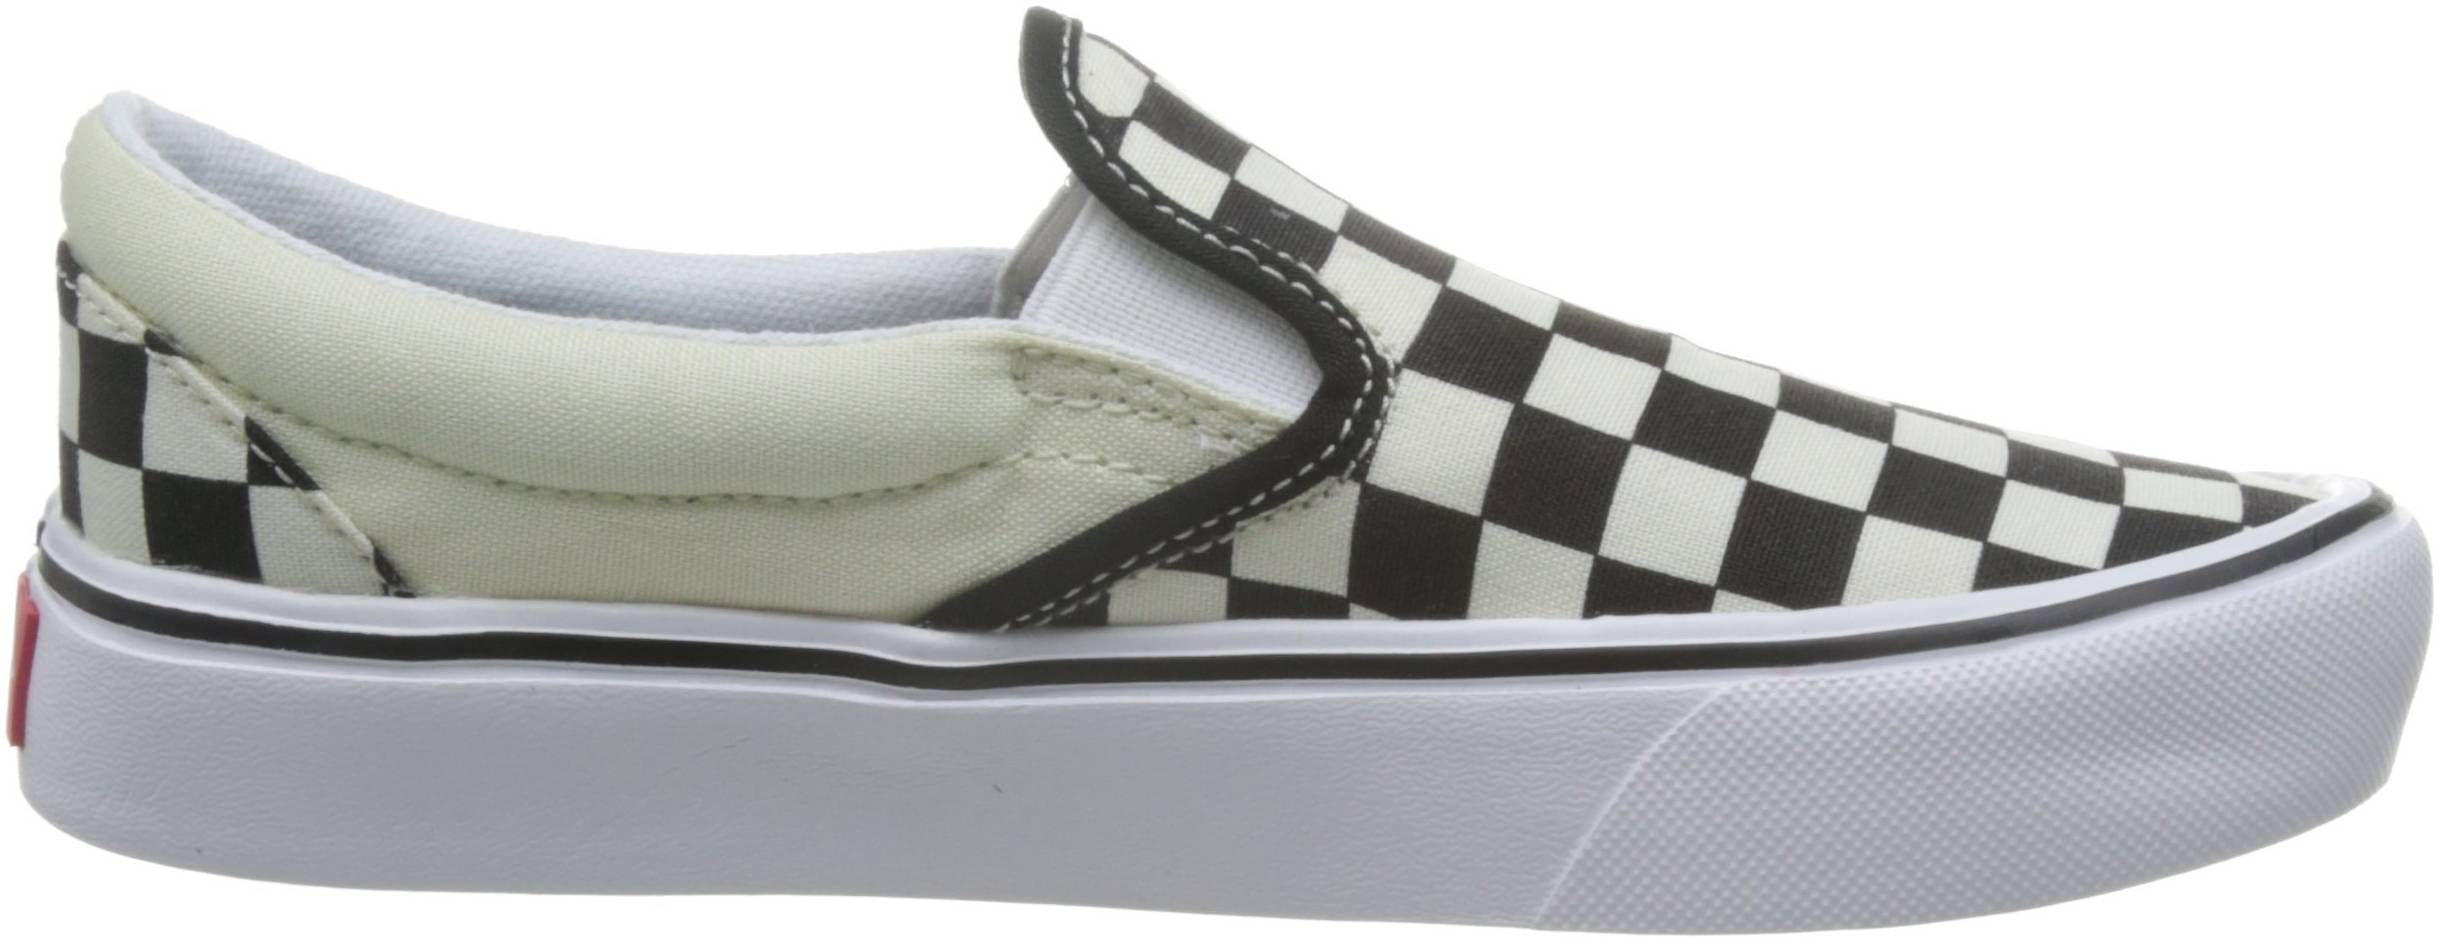 best-shoes-for-college-Vans Unisex Classic (Checkerboard ) Slip-On Skate Shoe